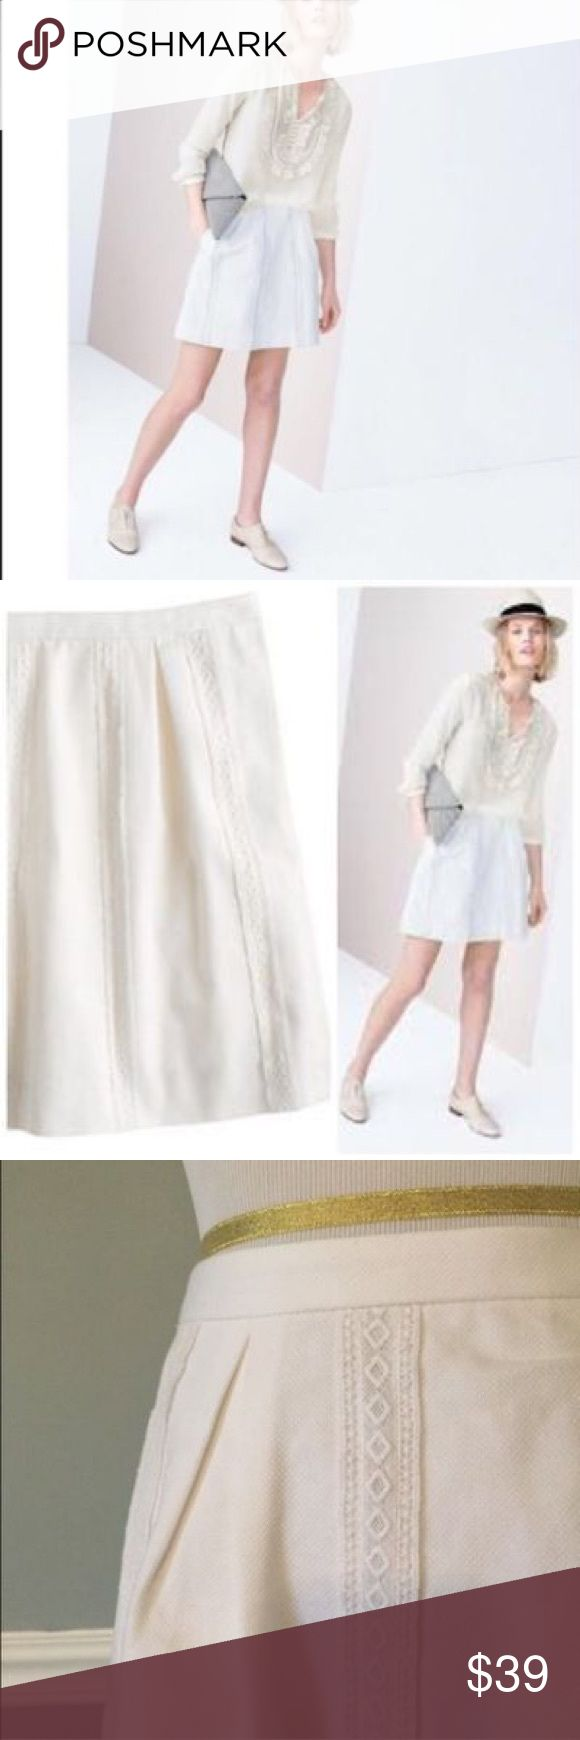 """NWT J Crew Lace Stripe skirt white 12 Sits above waist. 18"""" long. Falls above knee. Cotton.  Back zip. On seam pockets. Lined. Machine wash. Skirt for sale is white - pink is just for show. Tags have been marked to prevent store returns J. Crew Skirts Mini"""